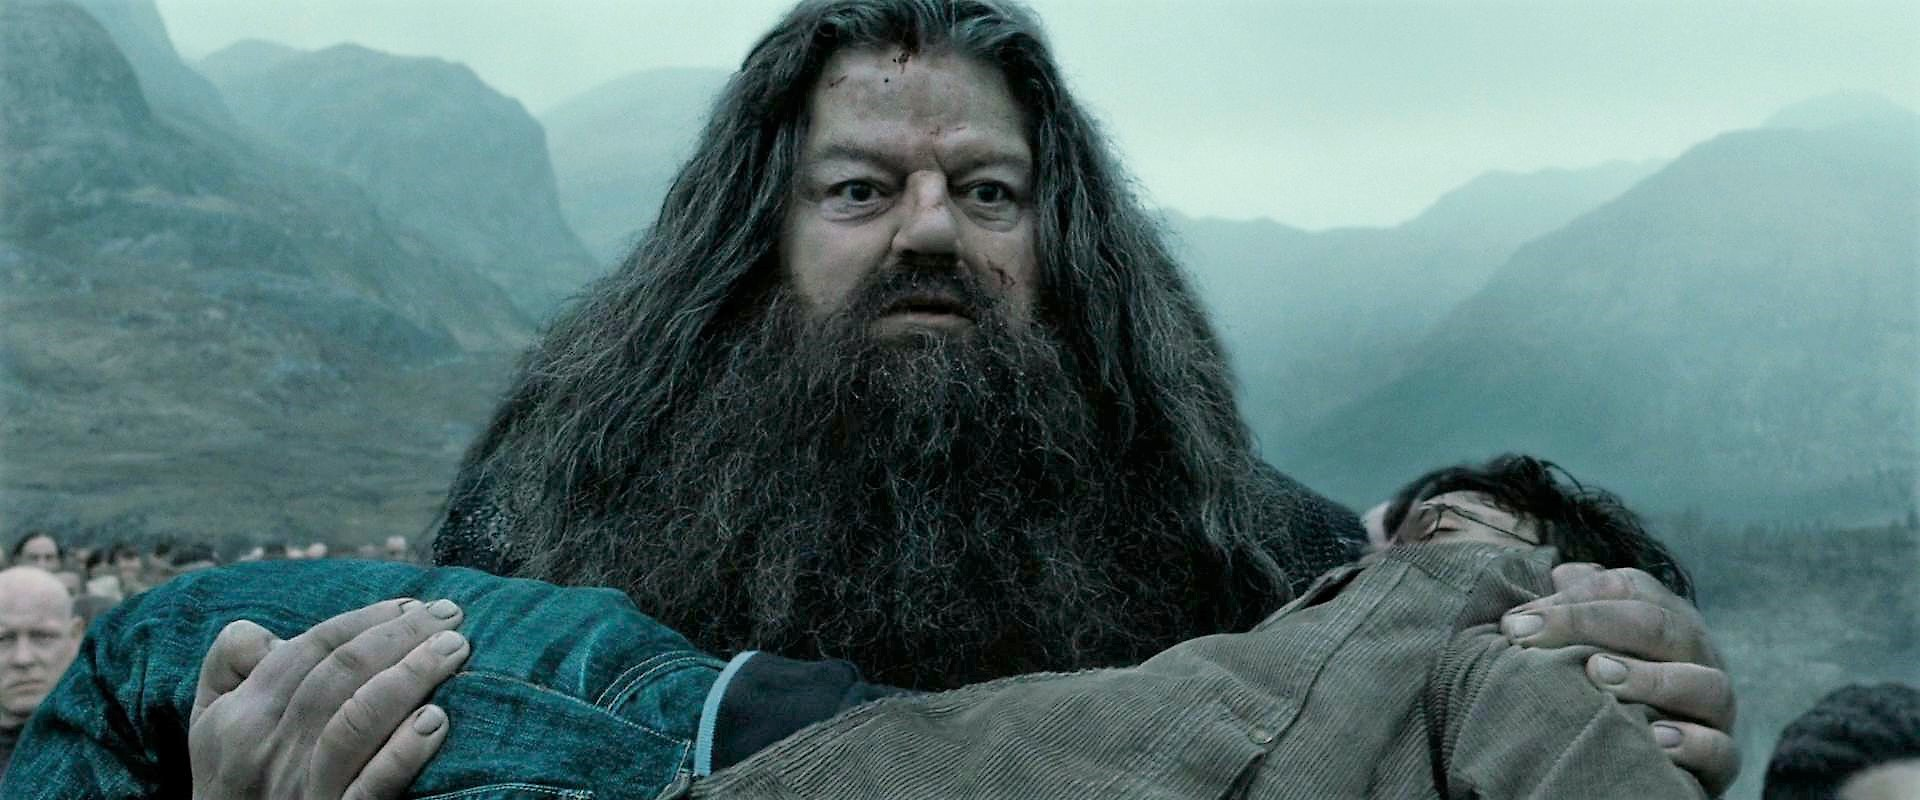 Bestand:Hagrid carrying Harry.jpg